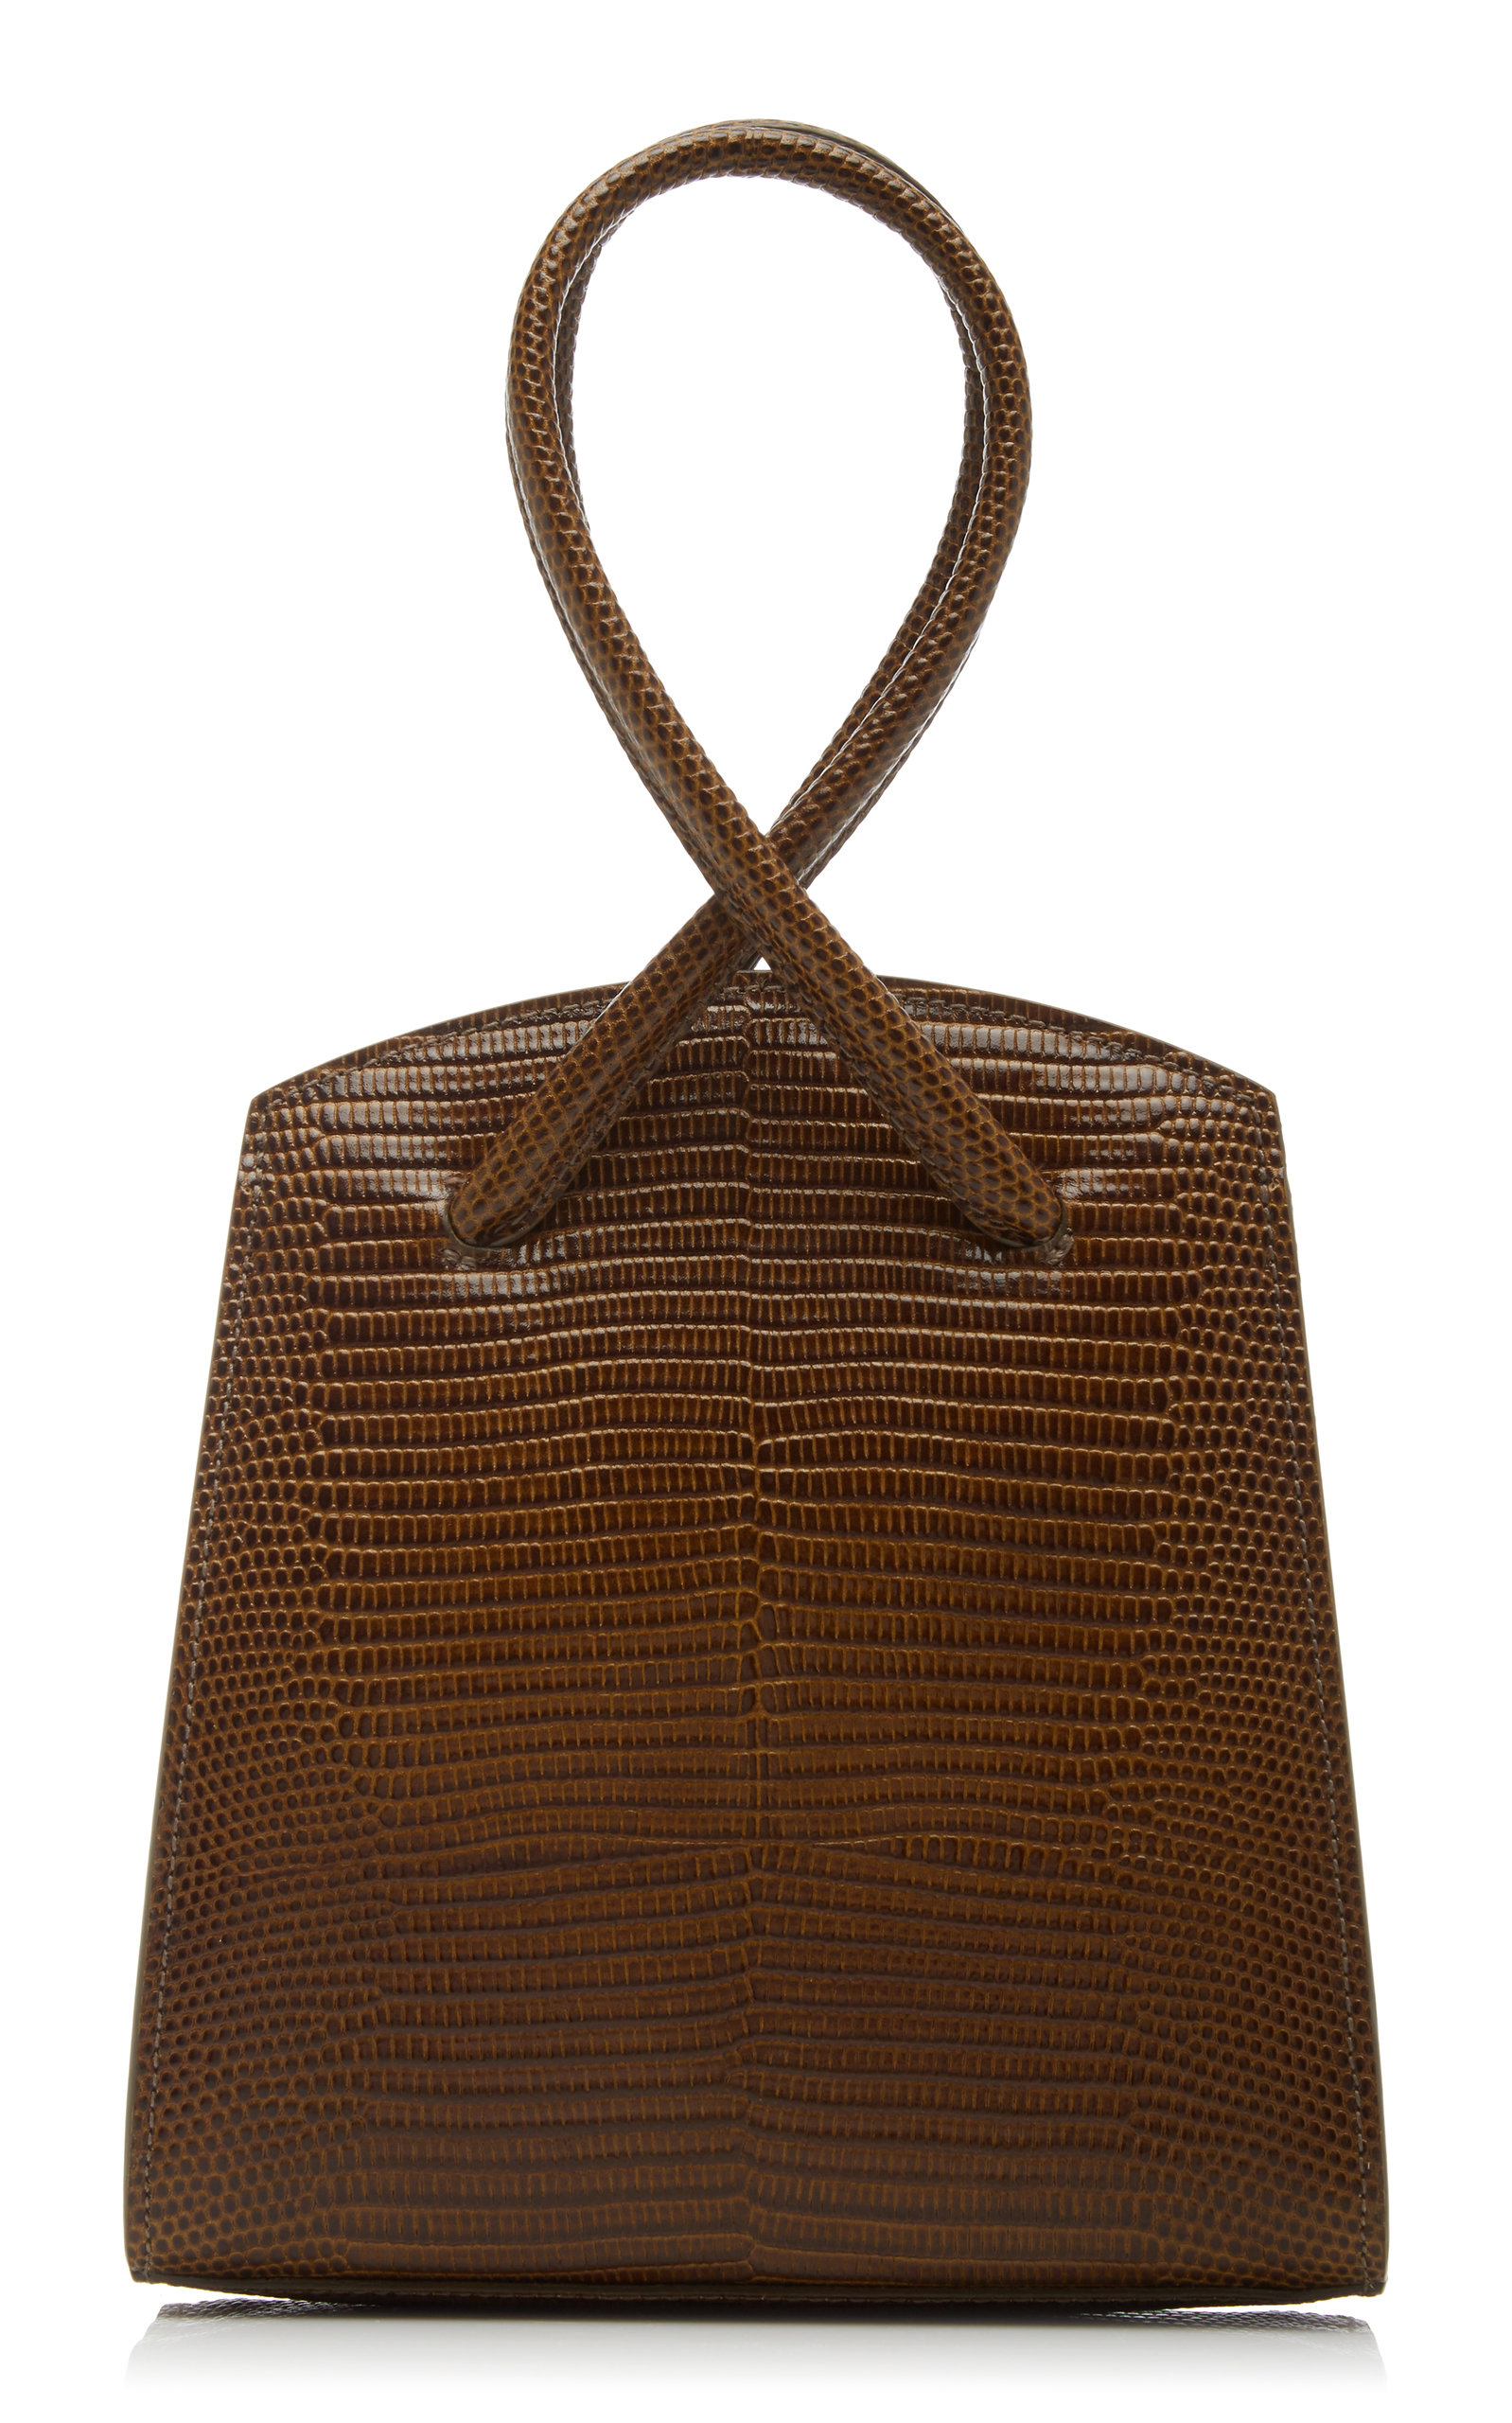 Little Liffner Twisted Wristlet Lizard-effect Leather Top Handle Bag In Brown